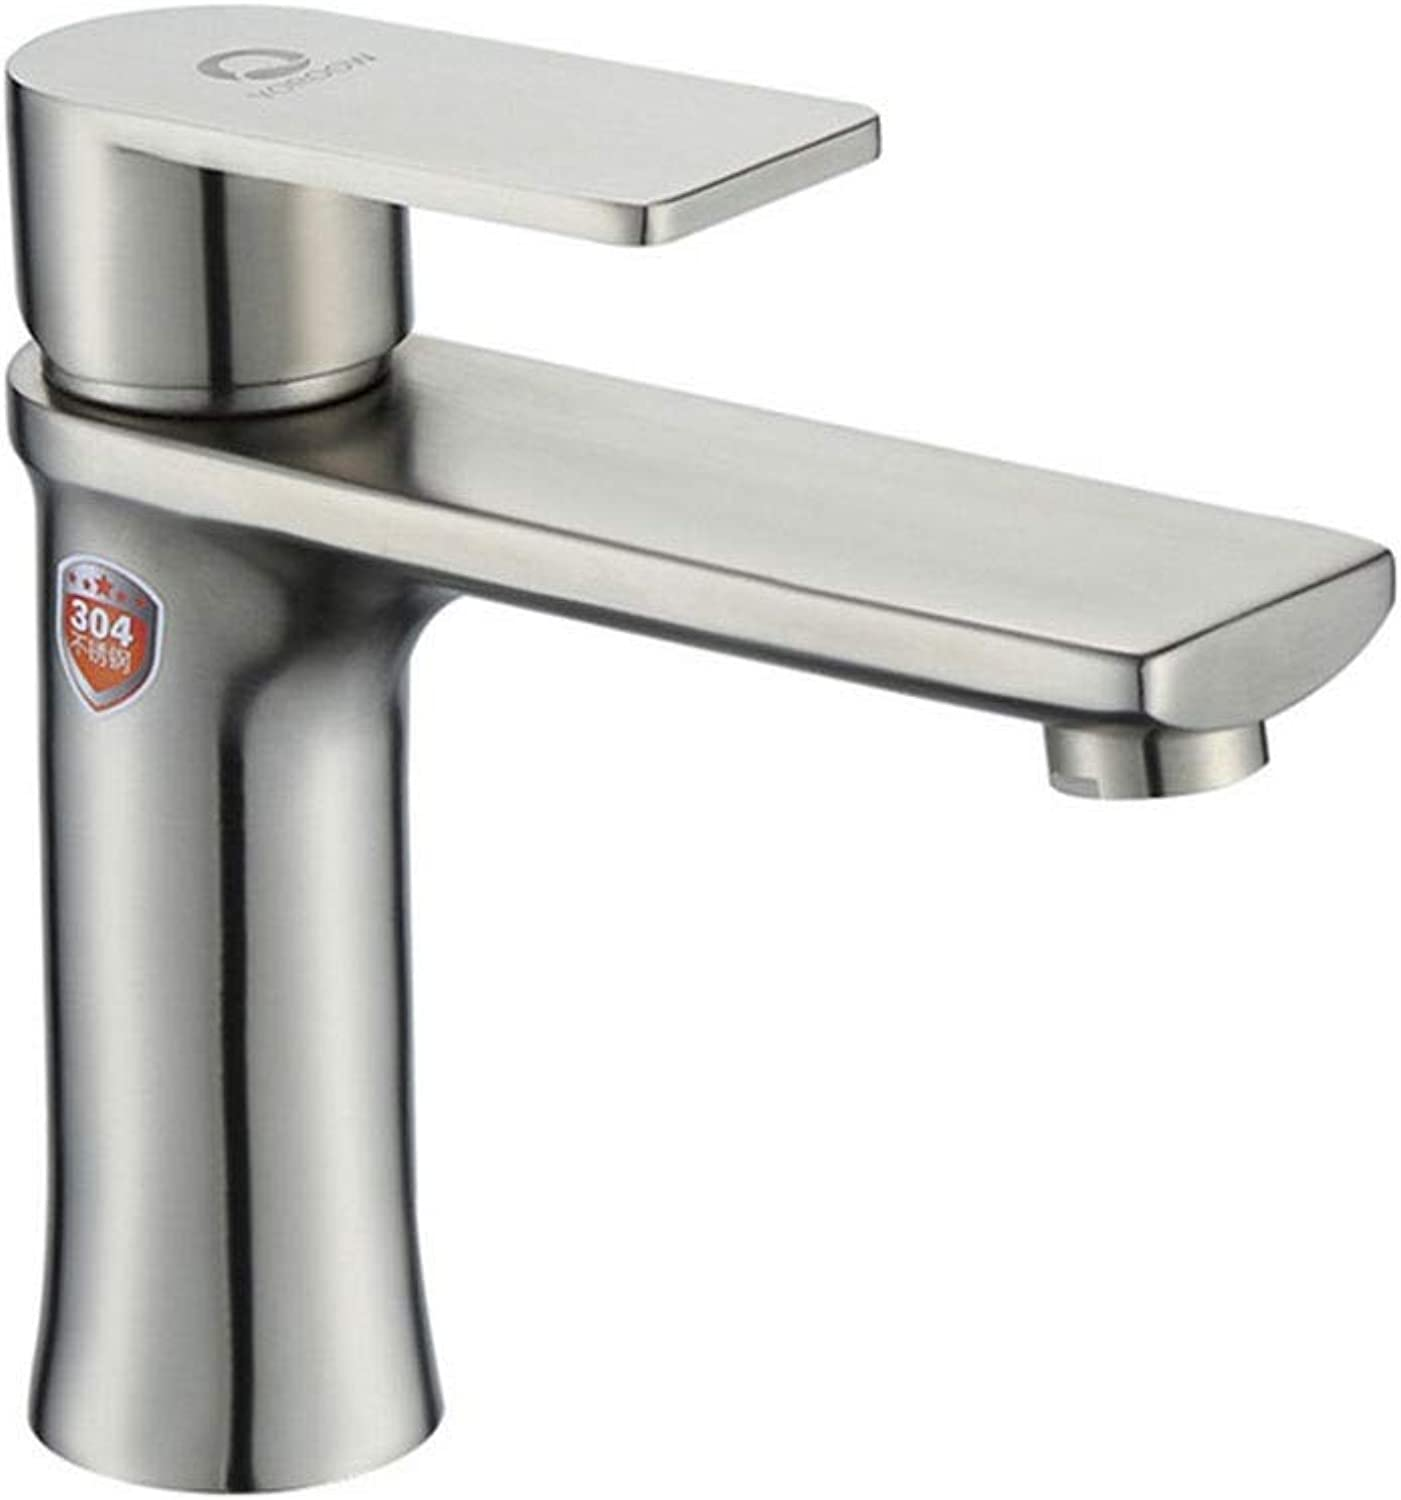 Towero Stainless steel hot and cold basin faucet Bathroom wash basin faucet